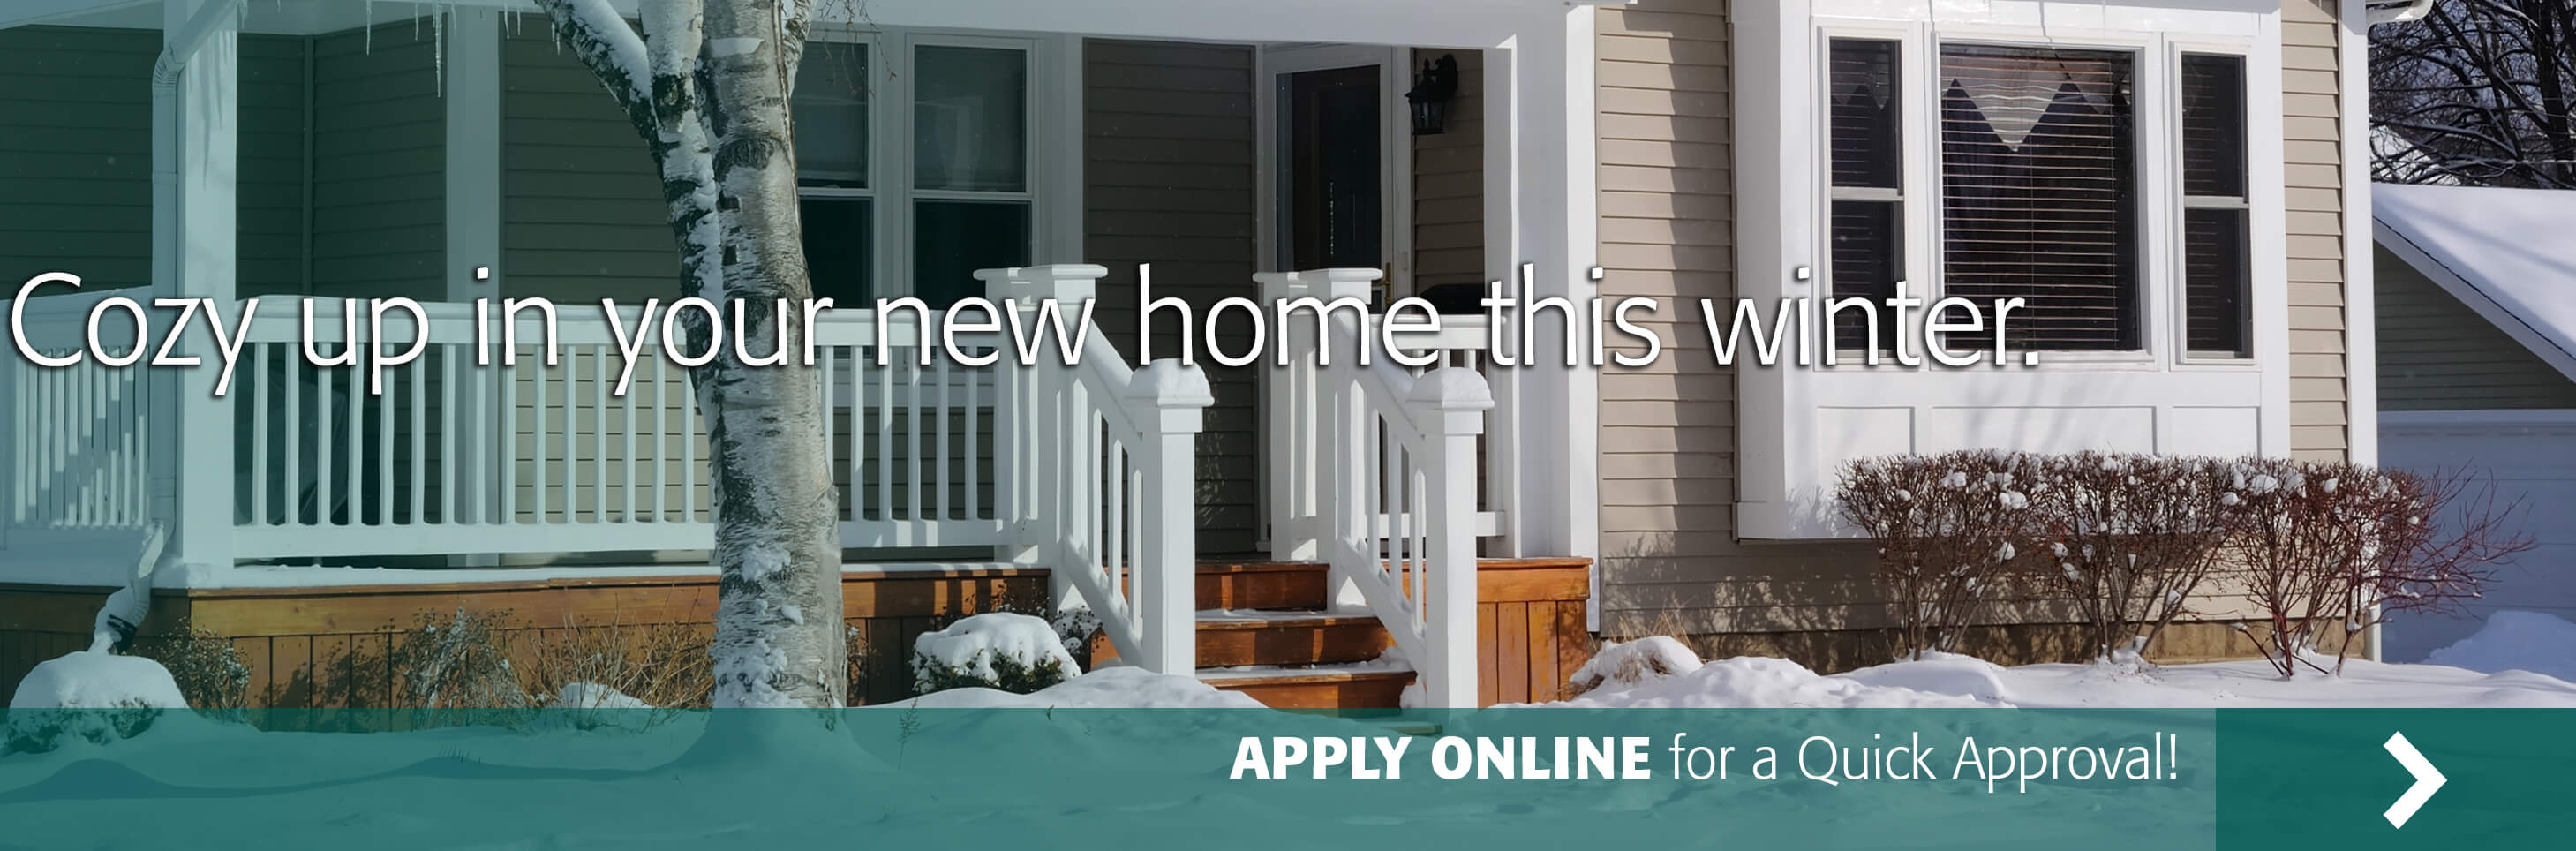 Cozy up in your new home this winter. Apply Online for a quick approval!